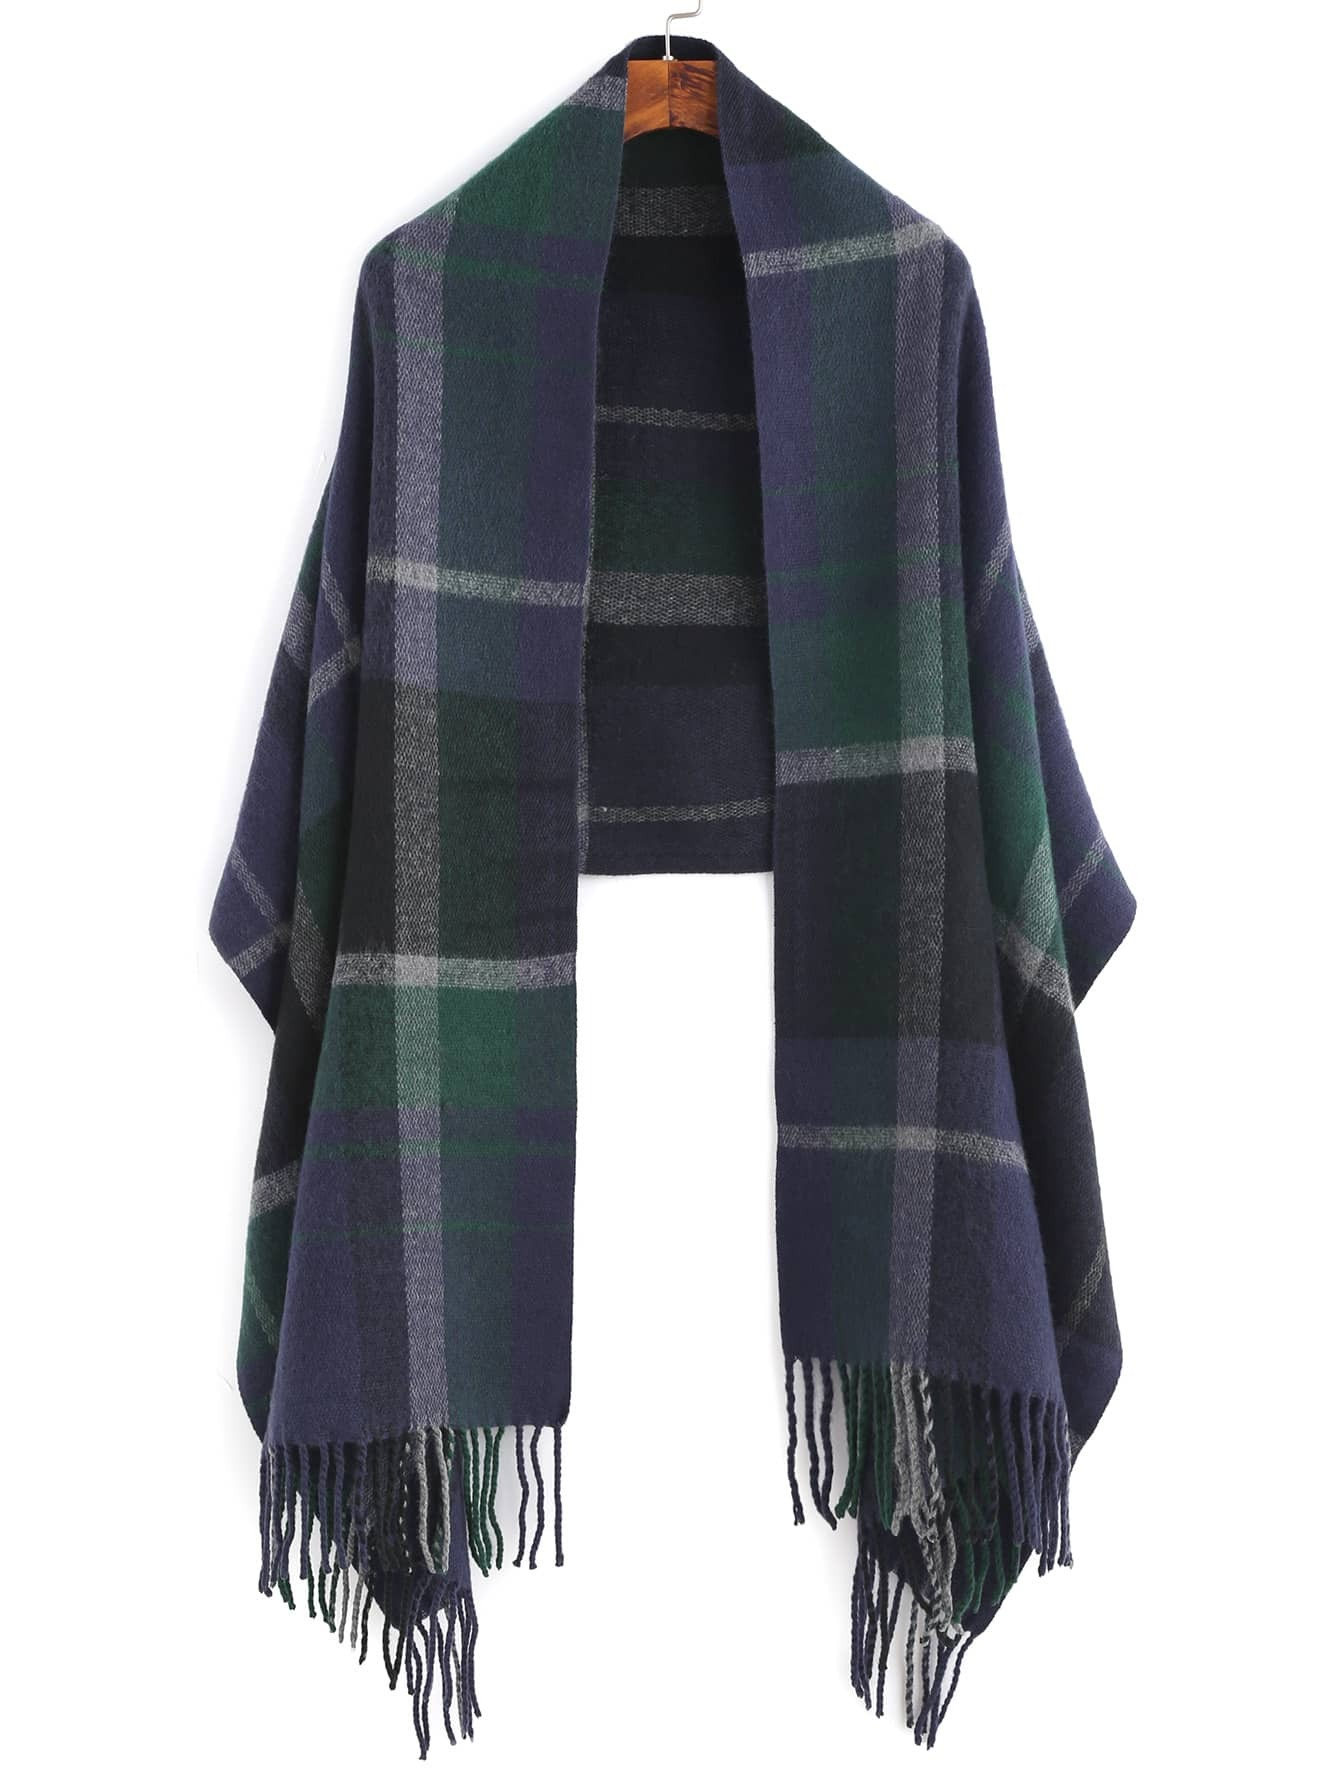 Navy And Green Plaid Fringe Edge Shawl ScarfNavy And Green Plaid Fringe Edge Shawl Scarf<br><br>color: Green<br>size: None